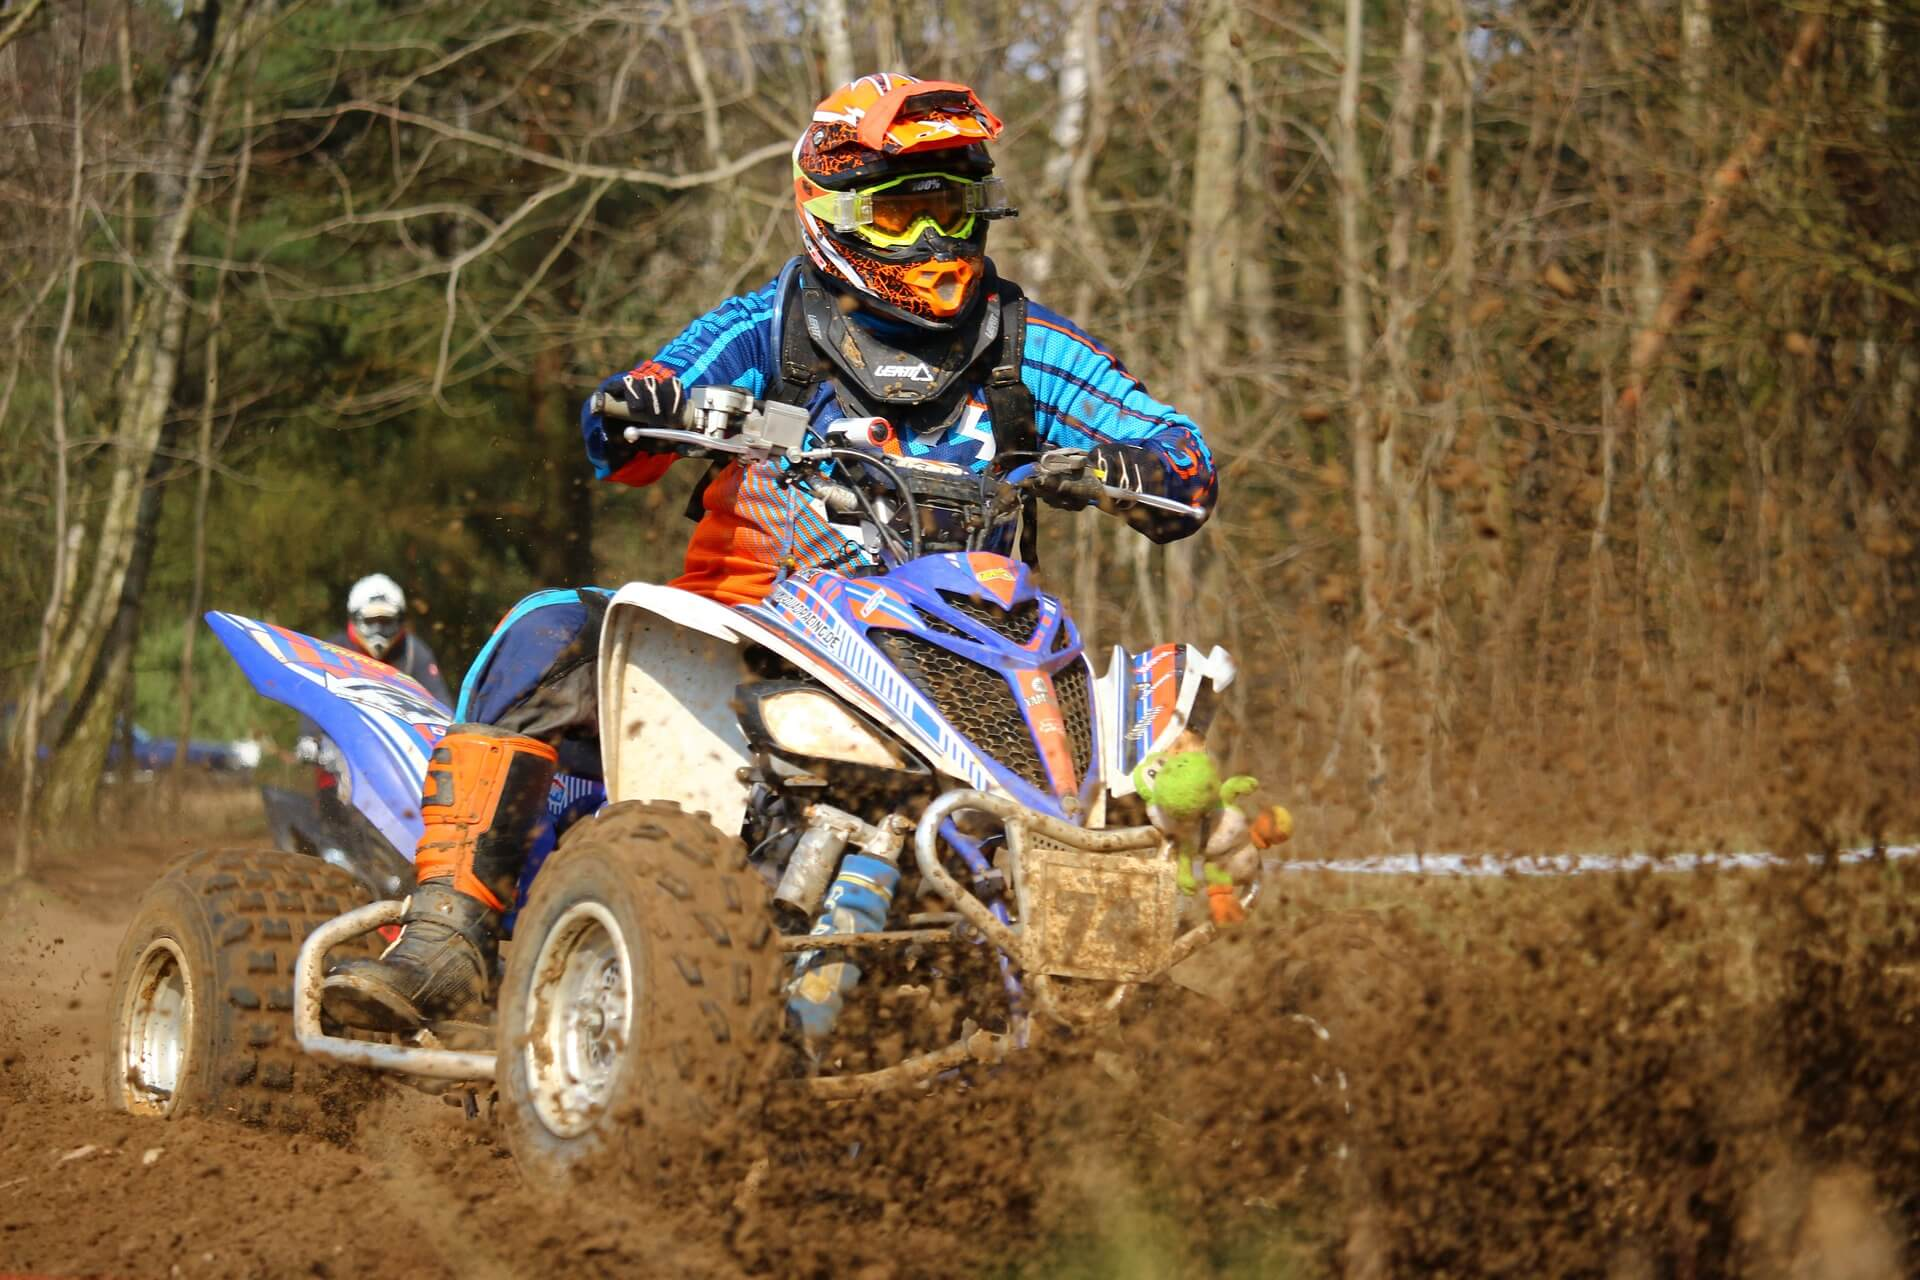 Dirt Bike Riding, ATV, Quad Rentals | Long Pond, PA  Alvins Offroad